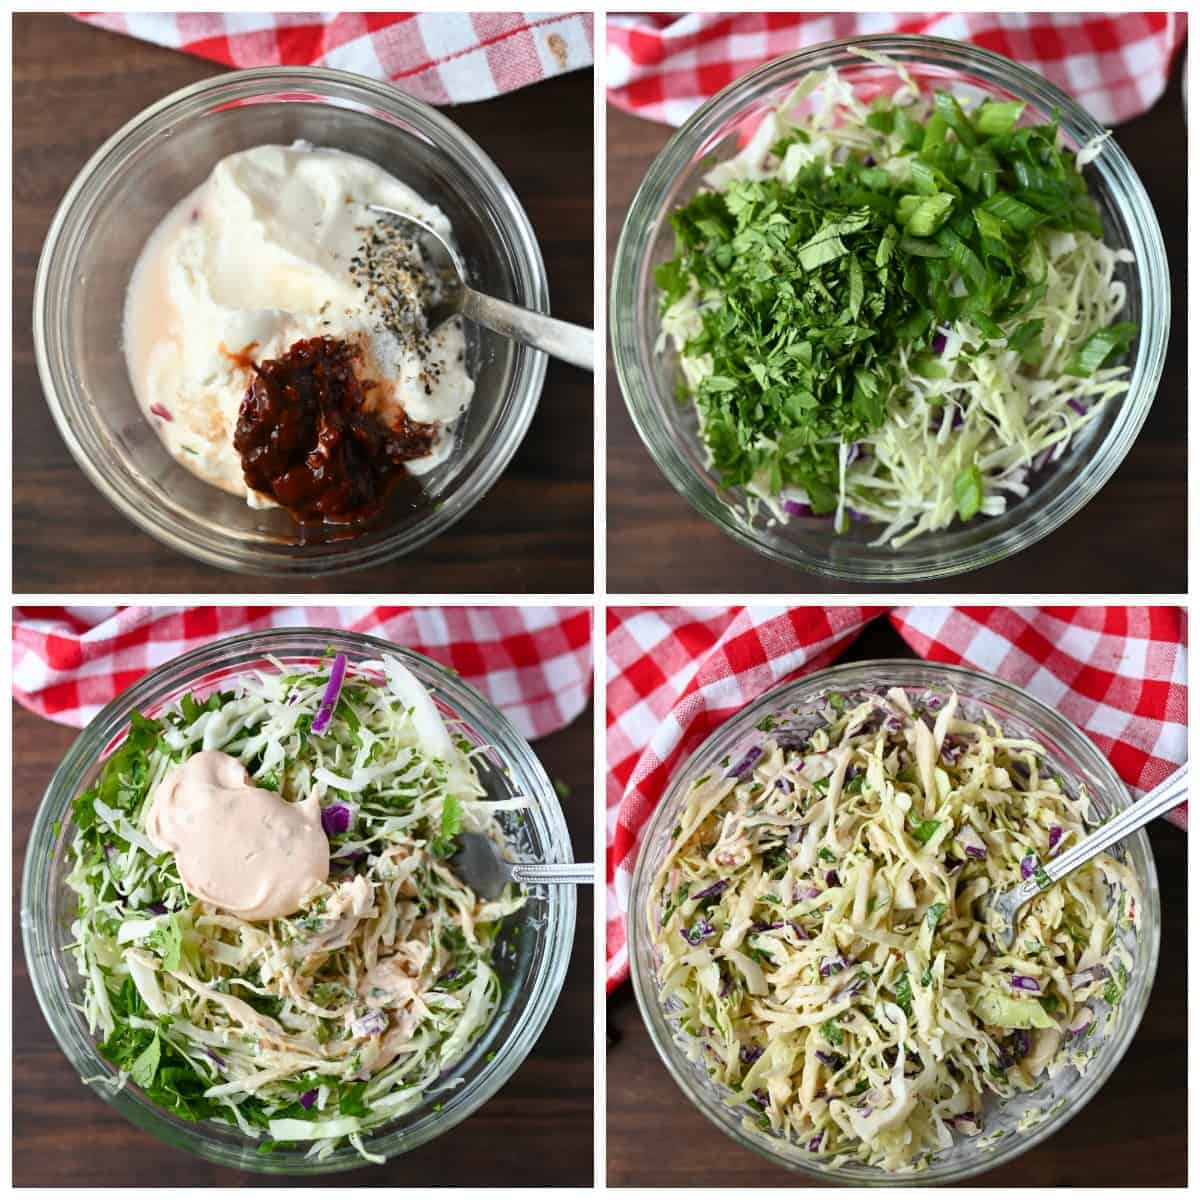 Four how to steps. Step one, sauce mixture in a small bowl with a spoon. Step two, coleslaw ingredients placed into a clear bowl. Step three, coleslaw ingredients with sauce mixture on top. Step four, the coleslaw fully mixed together in a bowl with a spoon.